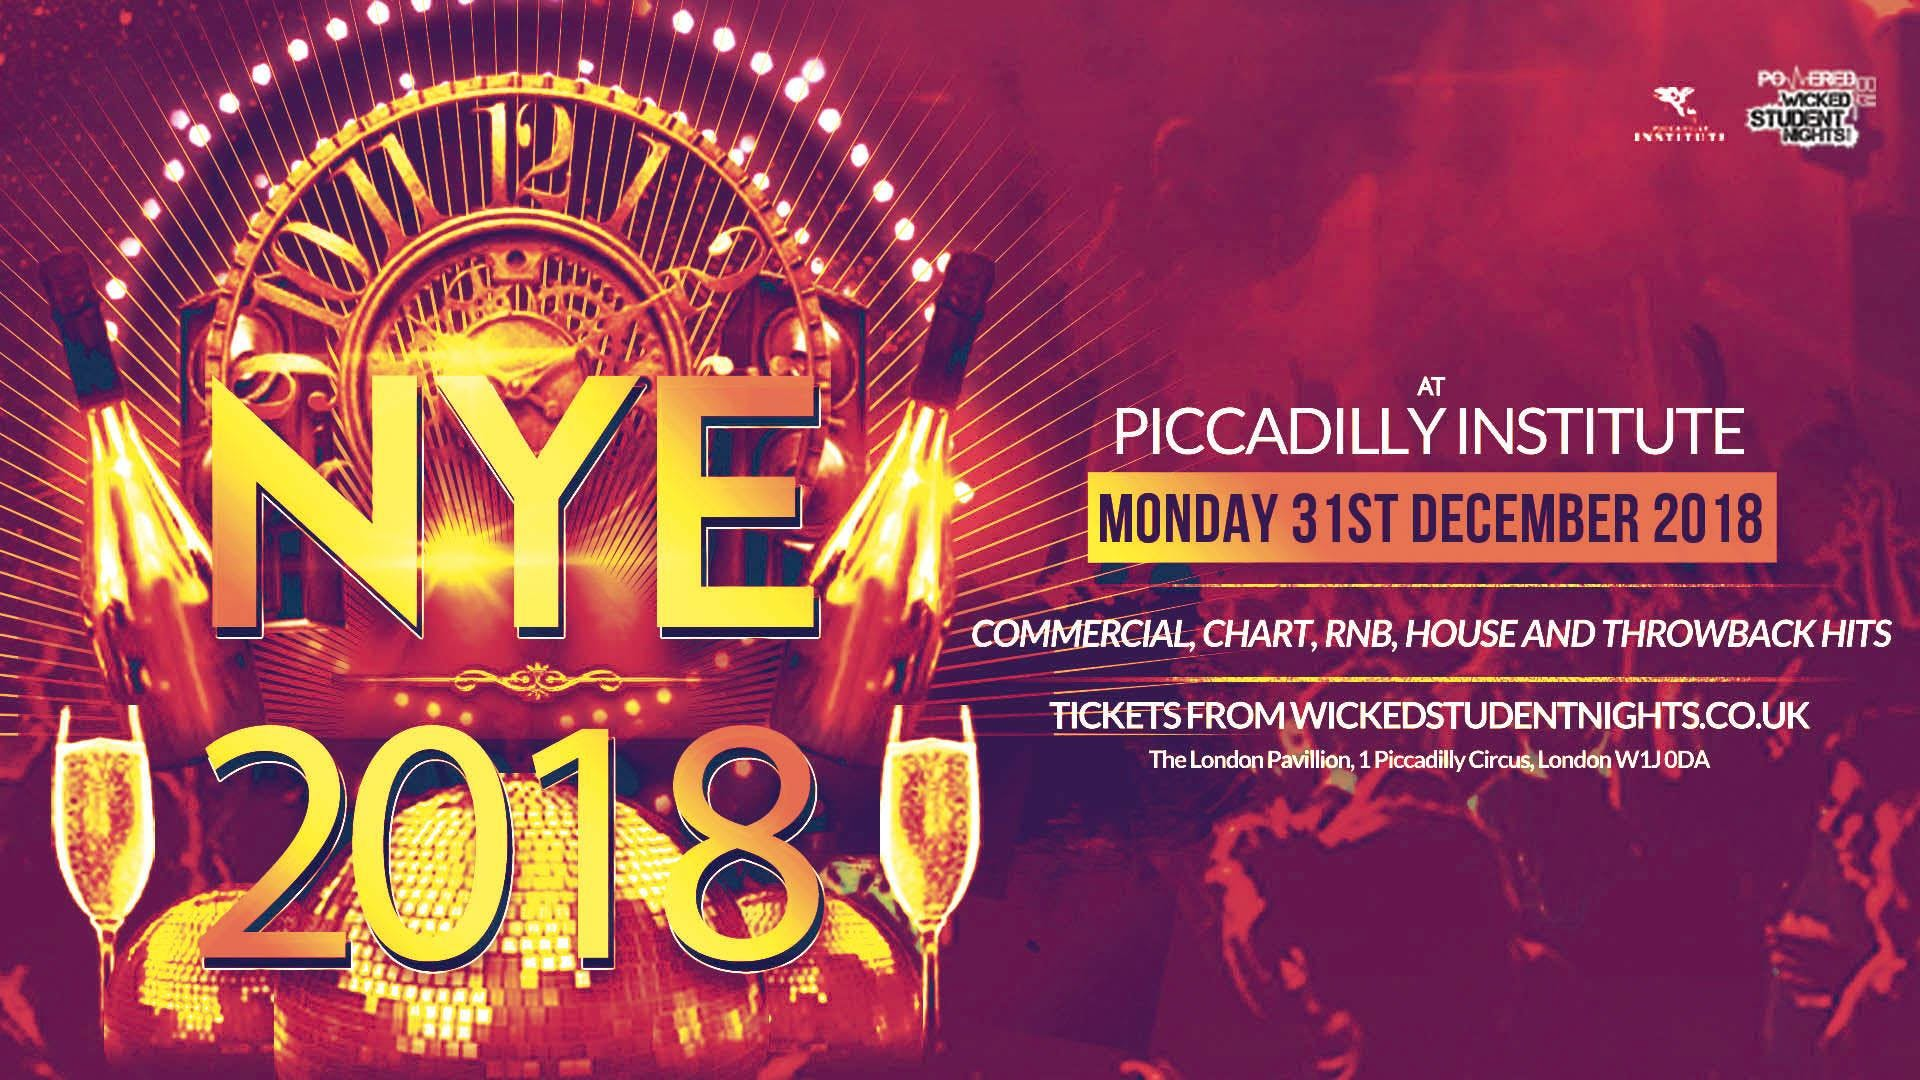 NYE AT PICCADILLY INSTITUTE